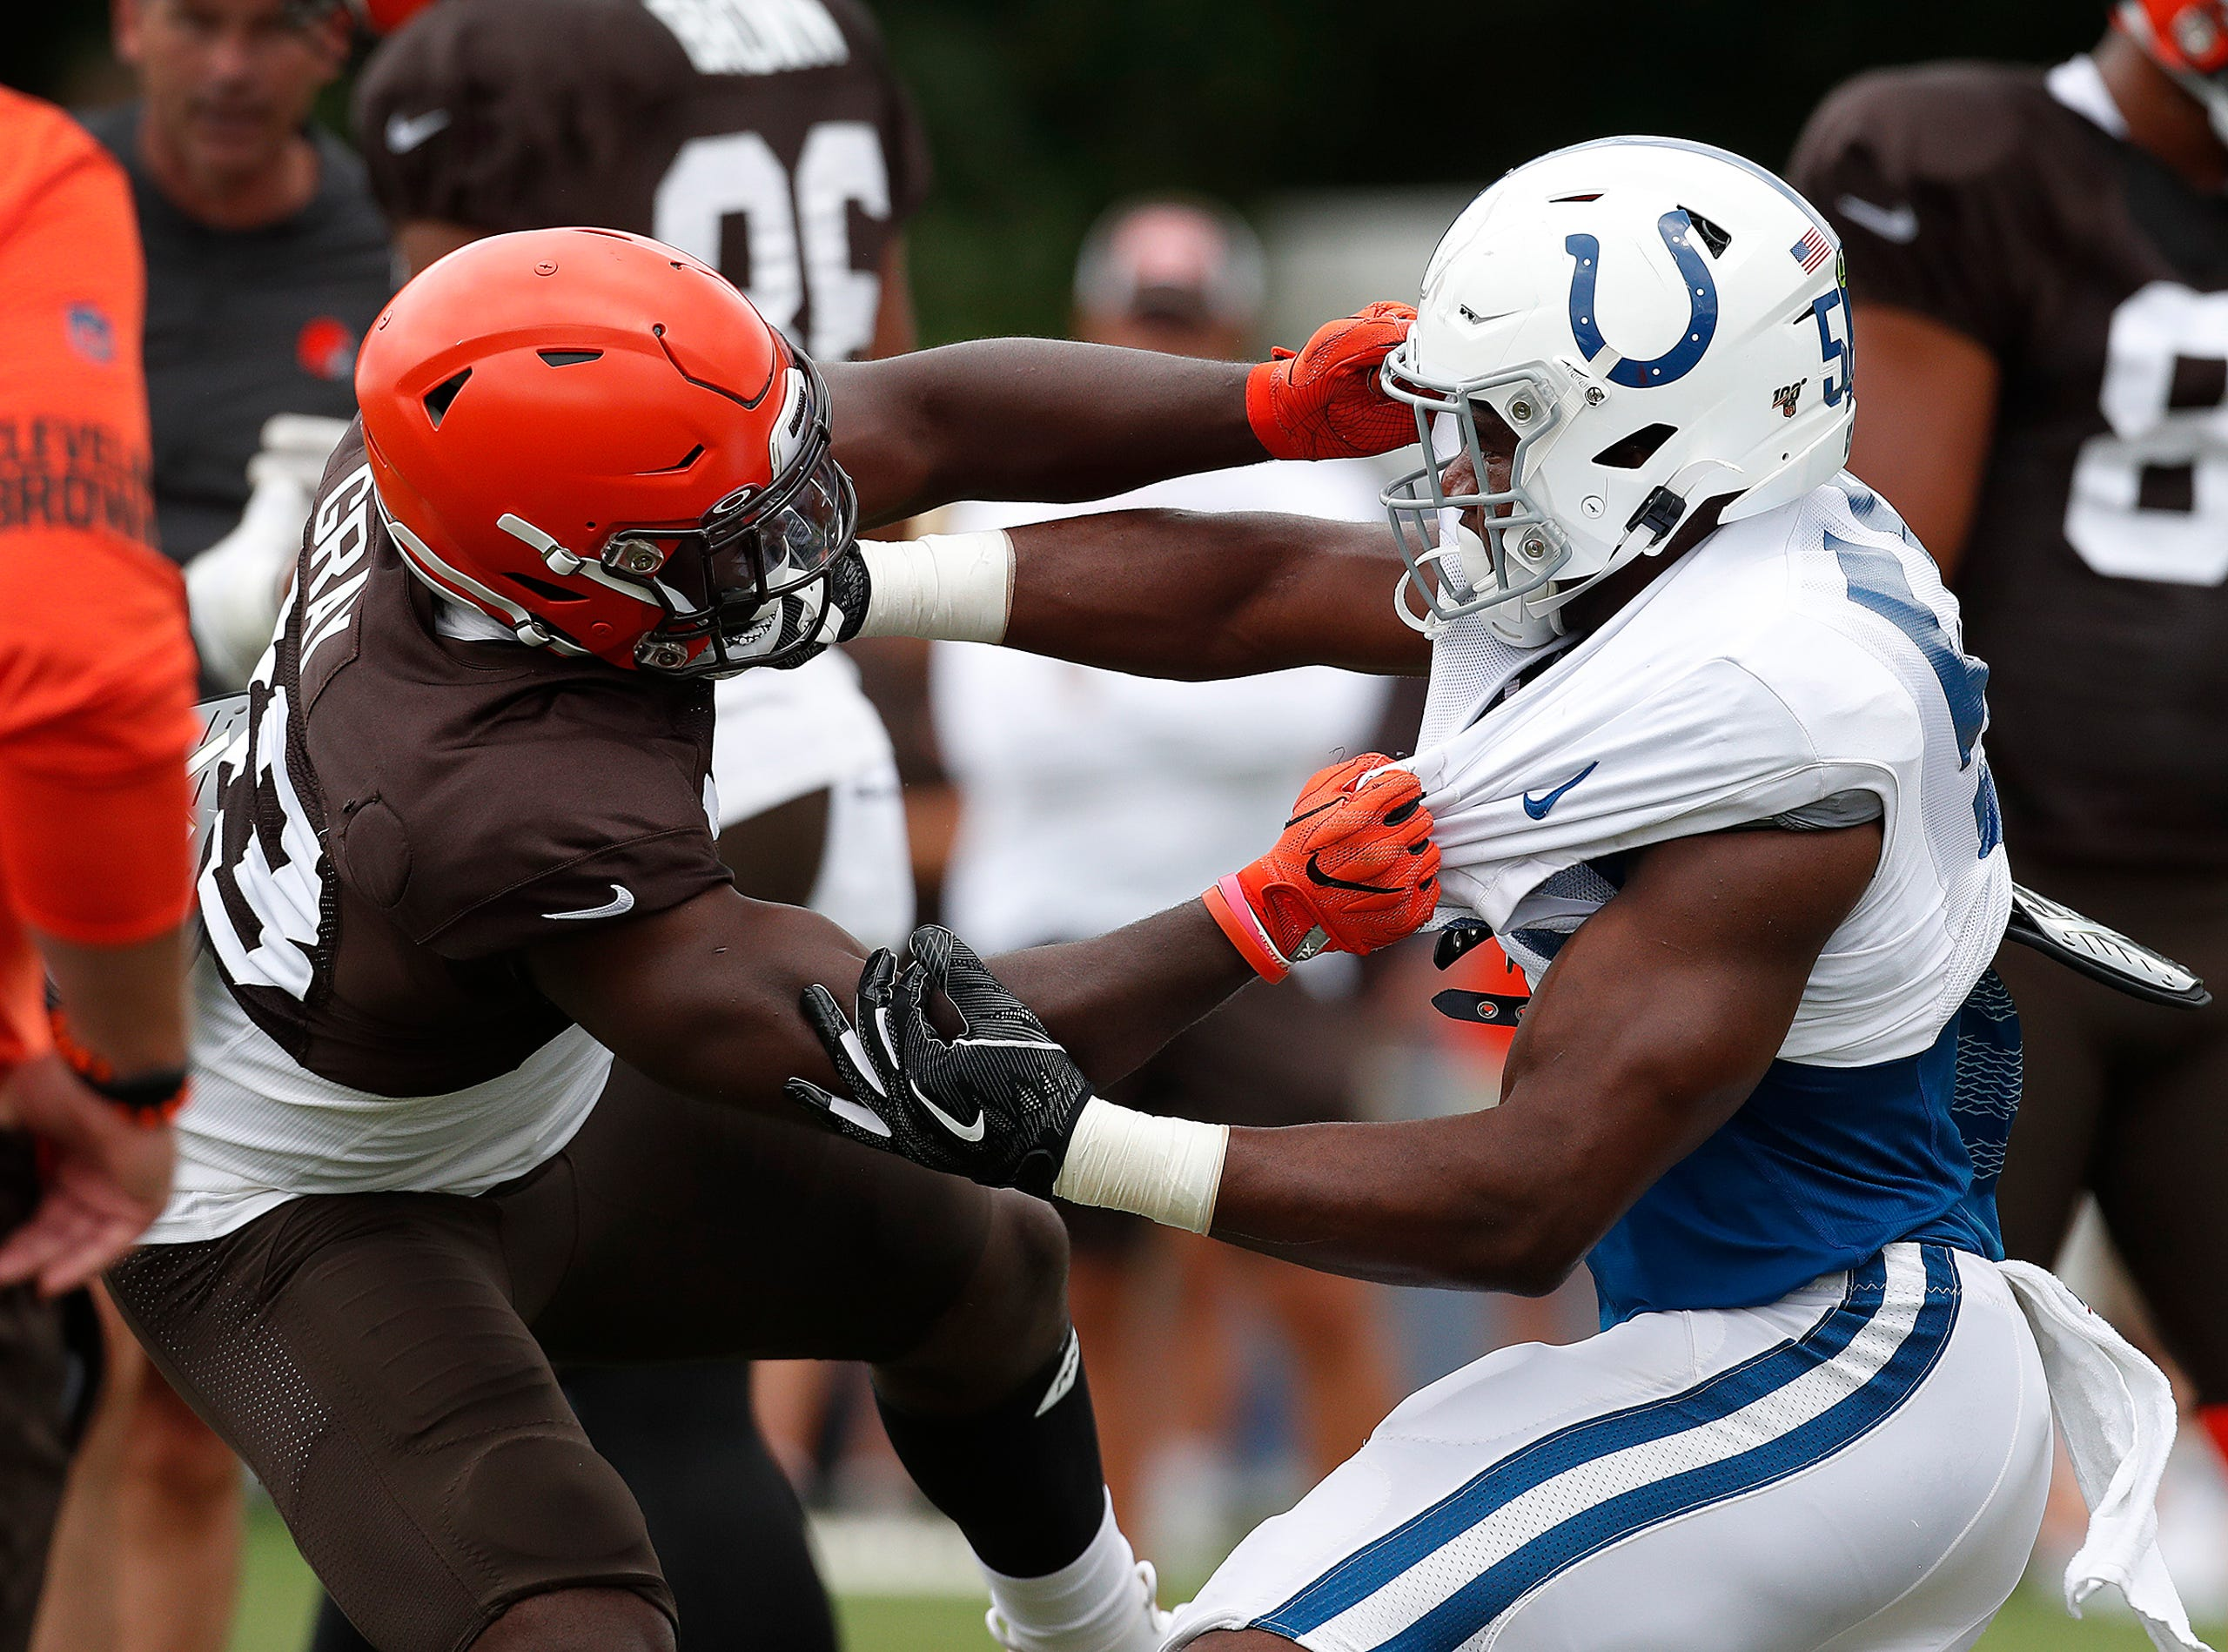 1deeb7d3 Colts scrimmage Cleveland Browns at Grand Park